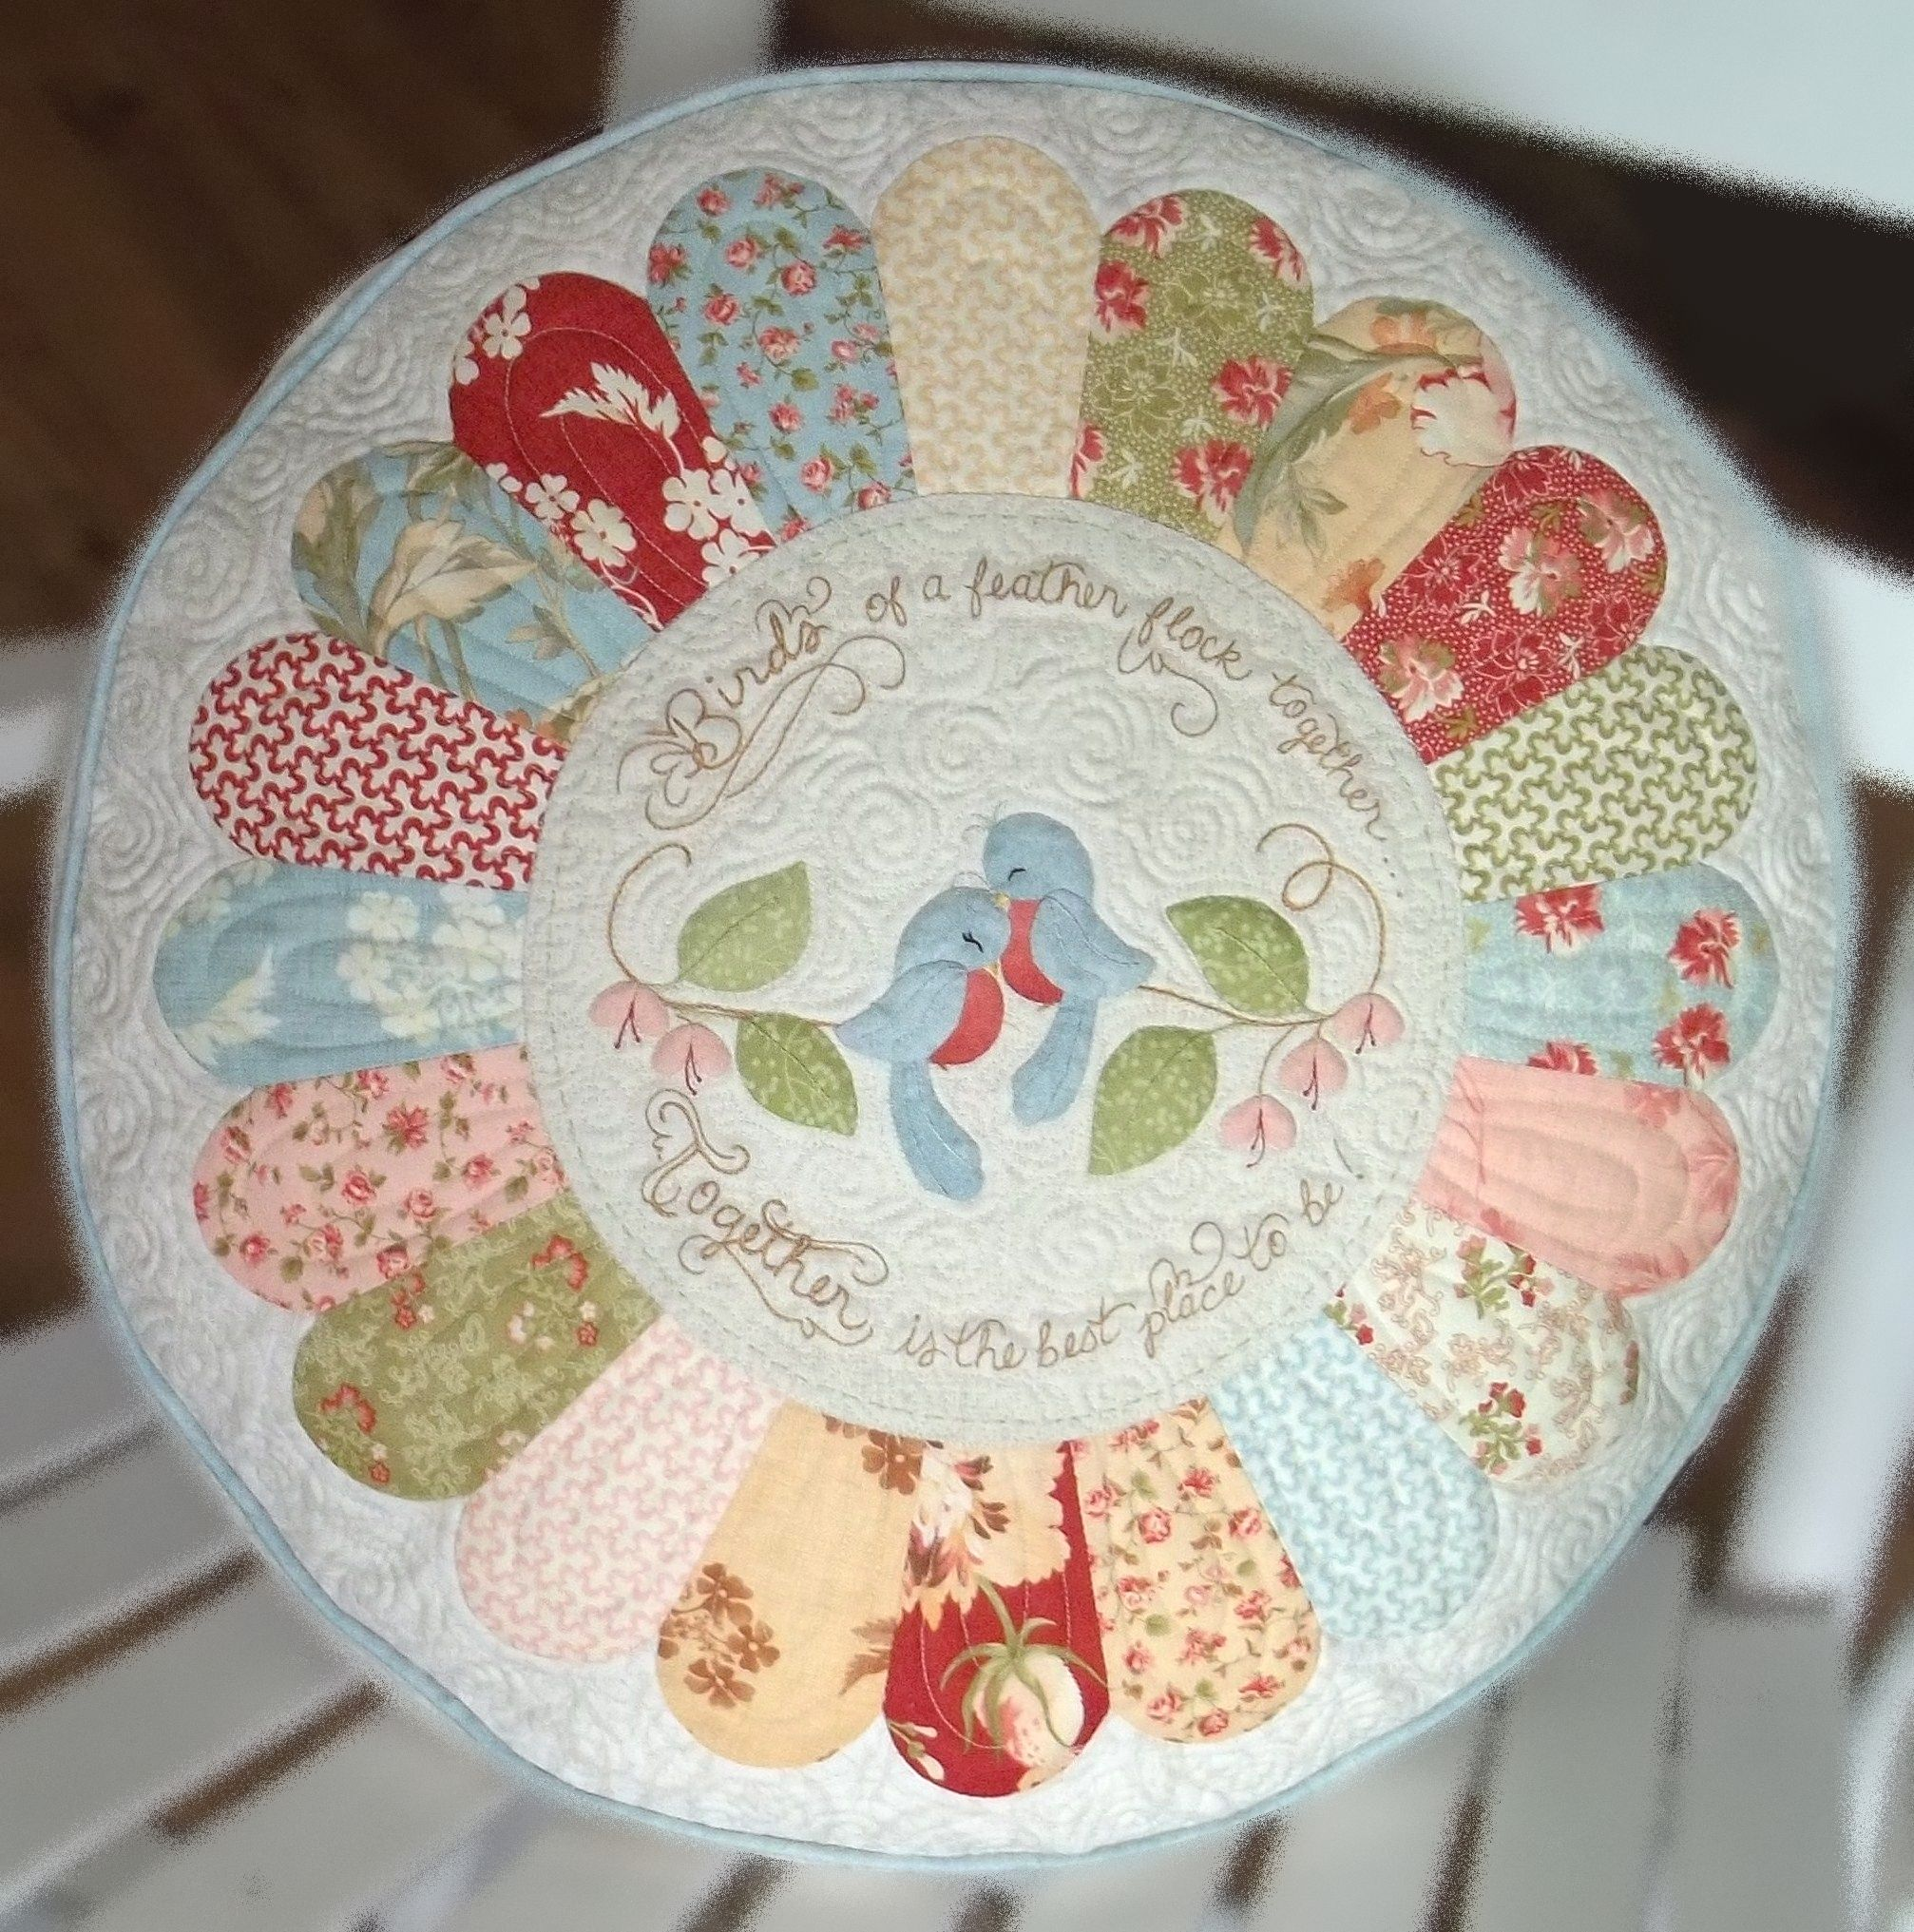 Chitter Chatter Designs To her applique pillow pattern